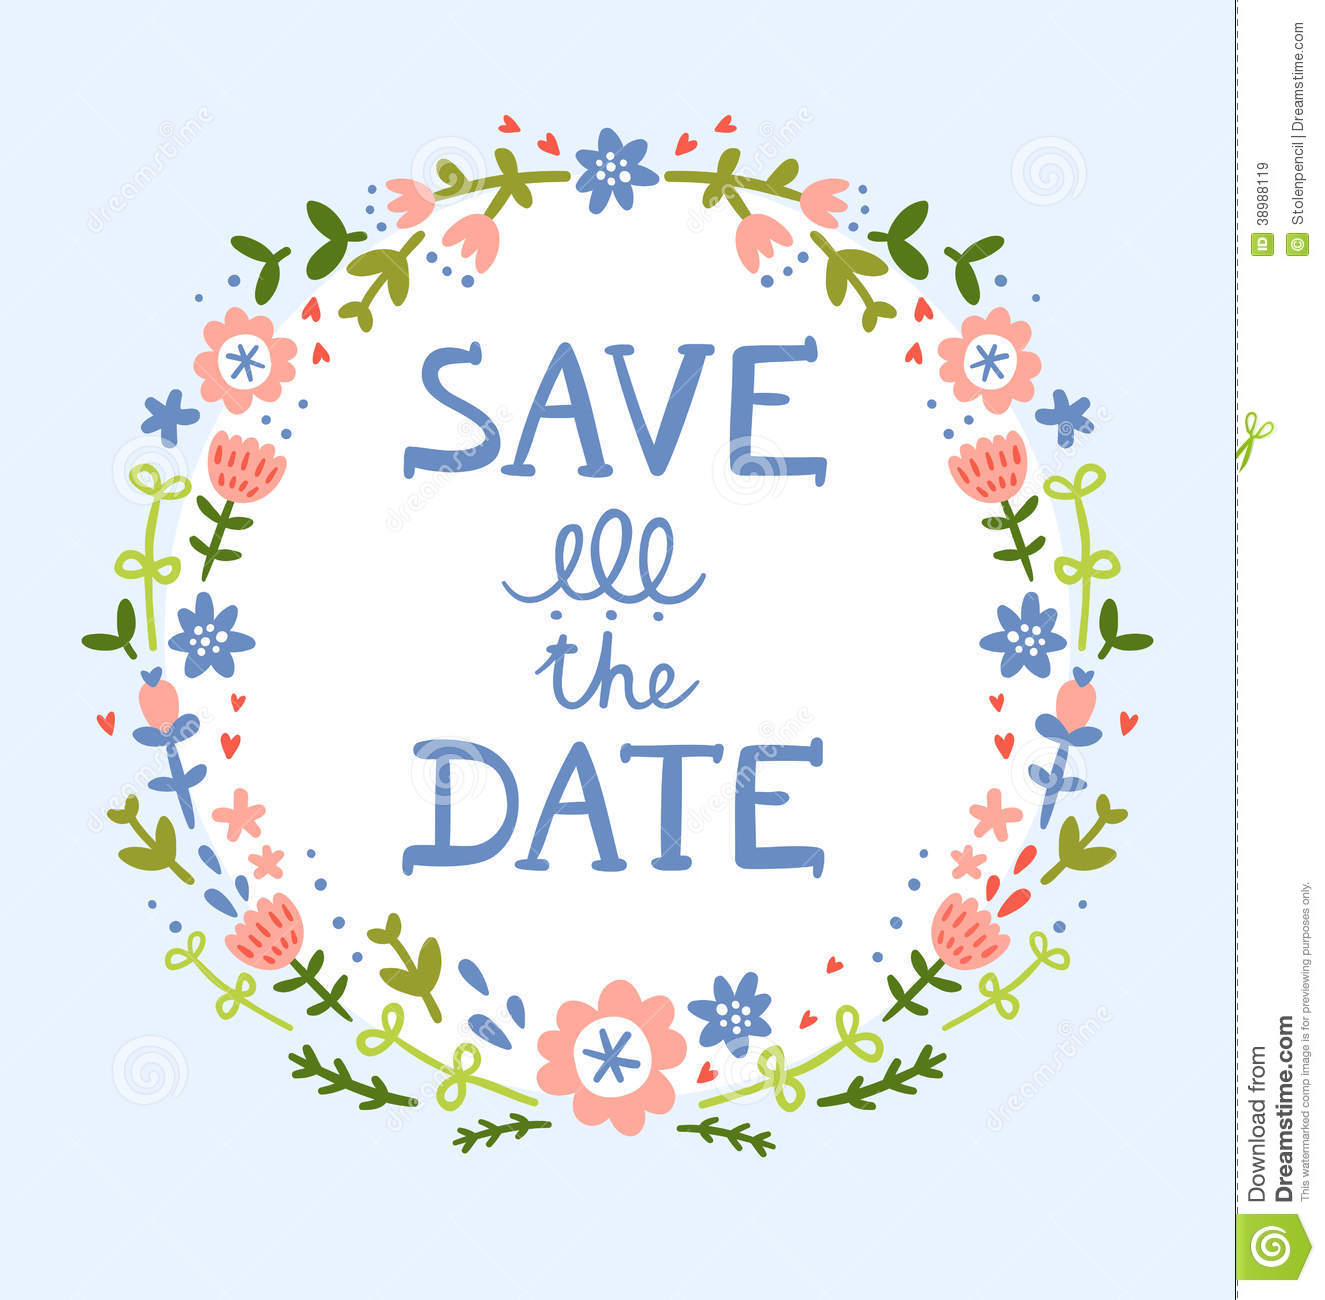 Save The Date Floral Wreath Stock Vector - Image: 38988119